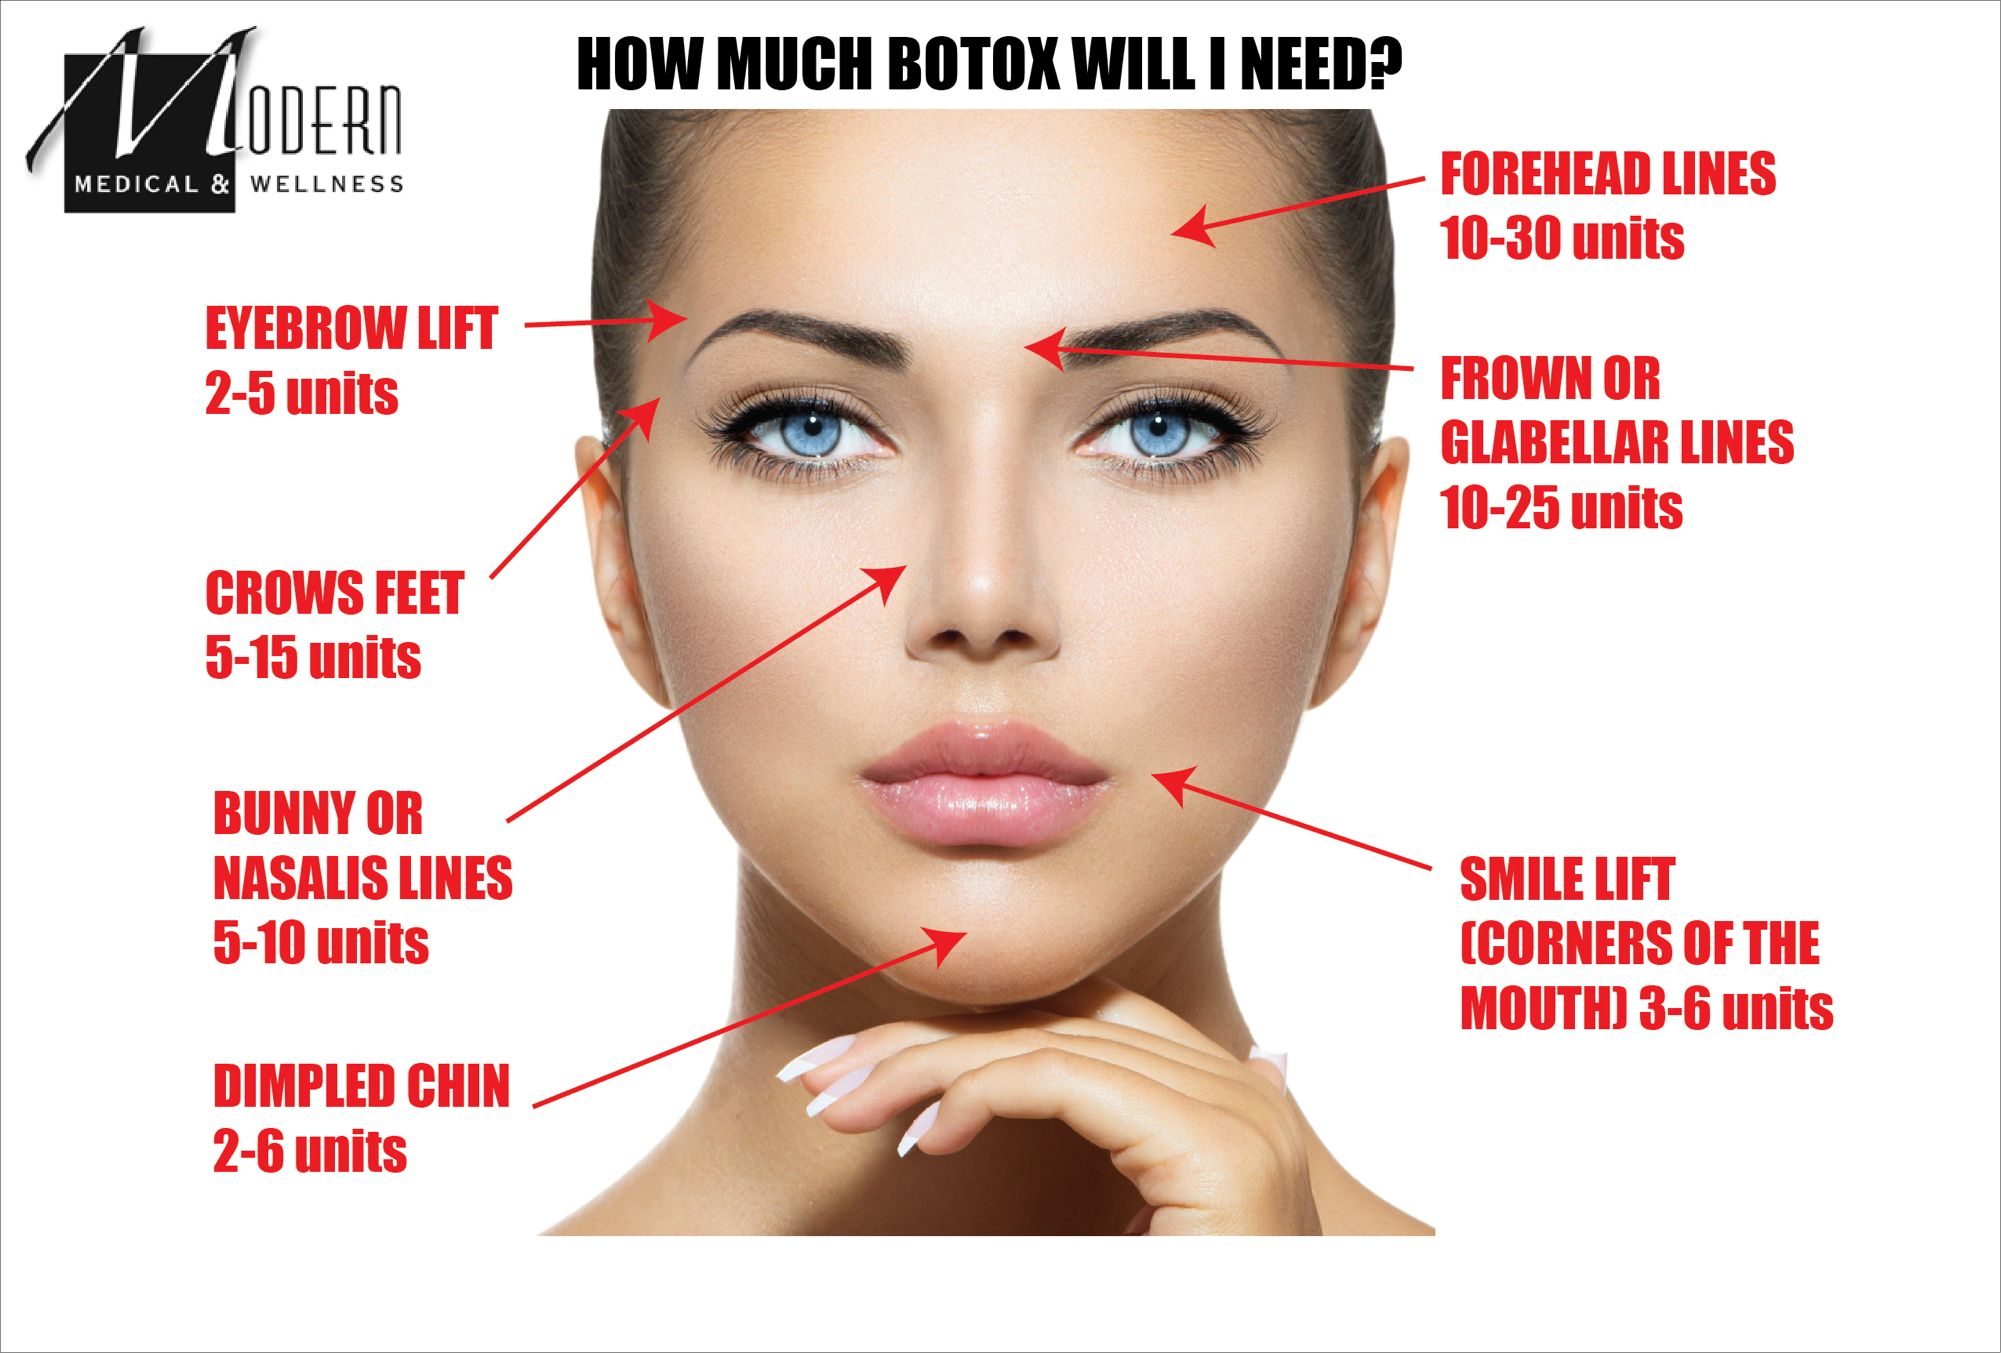 Botox Expert Injector 702 987 1555 Free Consultations In Las Vegas Nv Www Modernmedicalandwellness Com Try With A Natural Botox Skin Aesthetics Eyebrow Lift